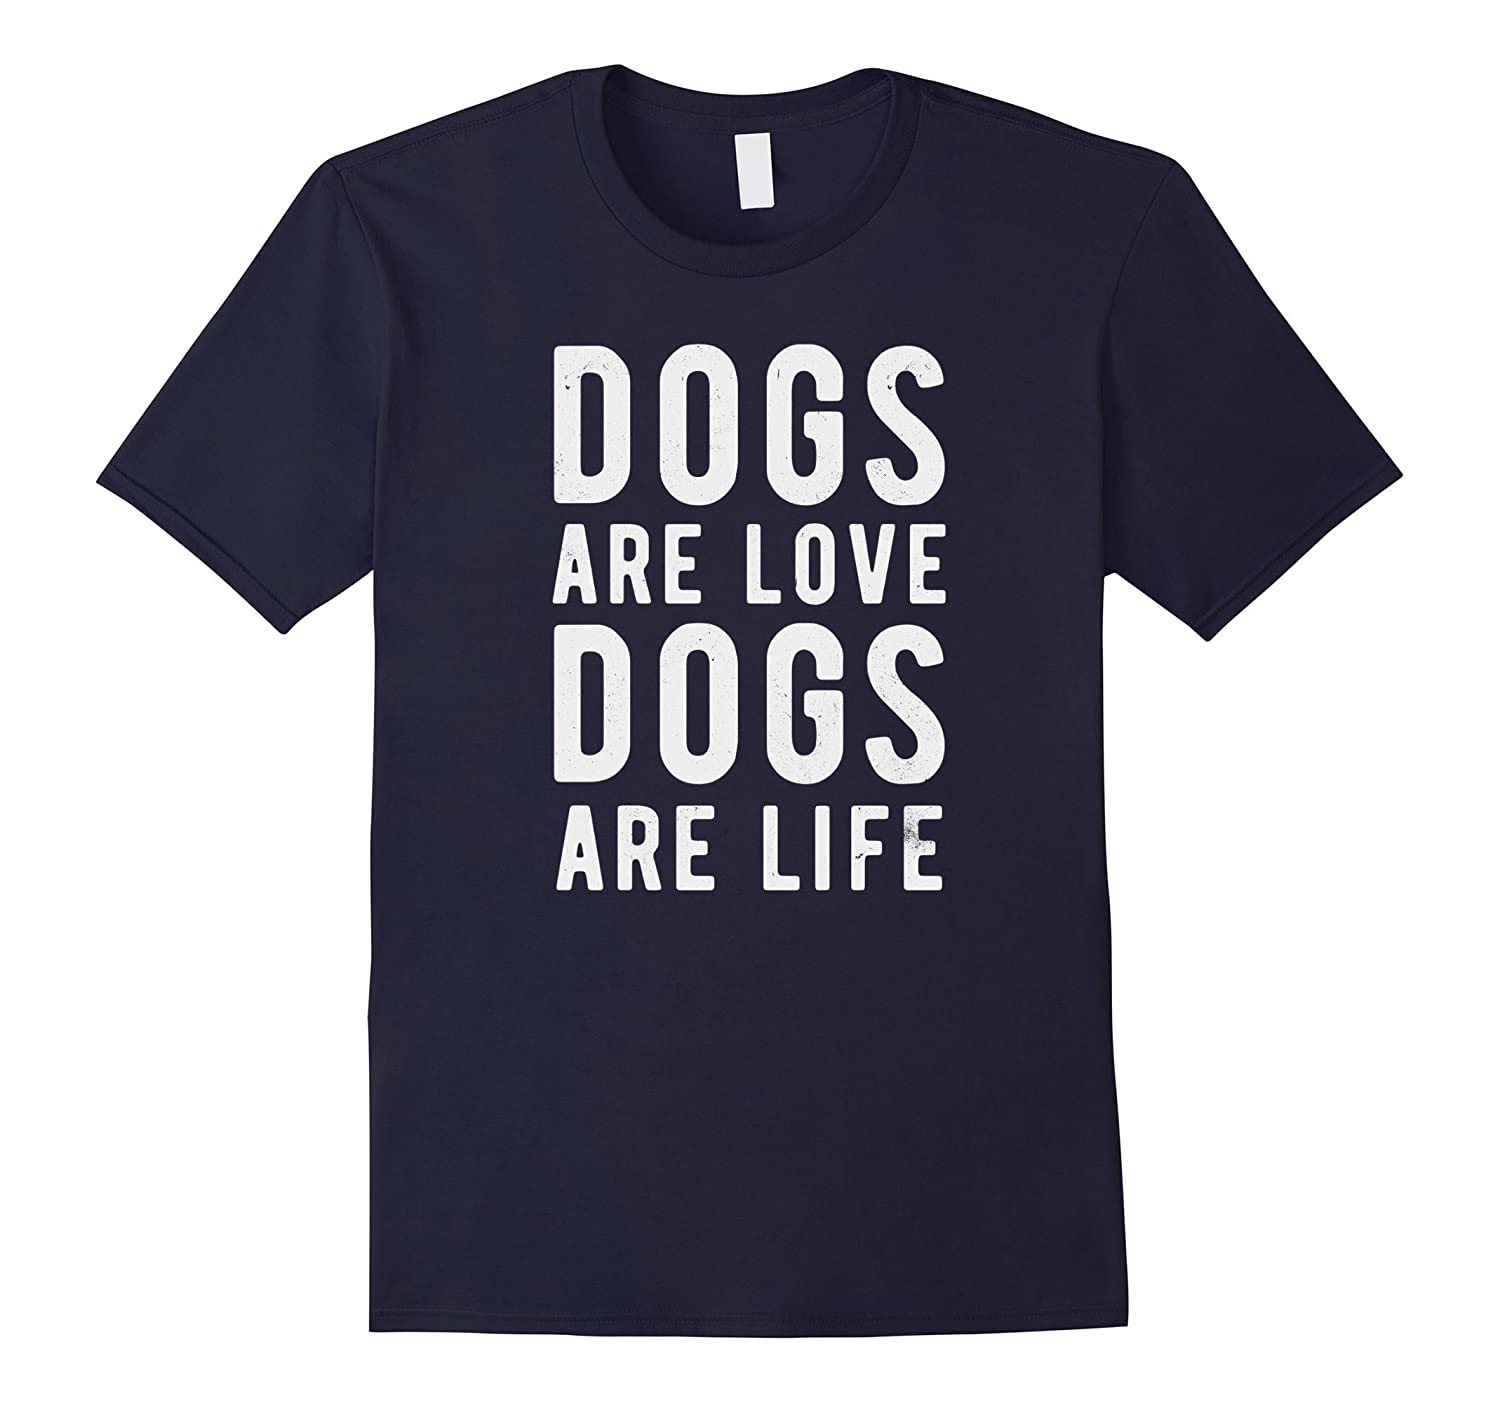 Dogs are love, dogs are life, t-shirt design, men,women,kids-CL